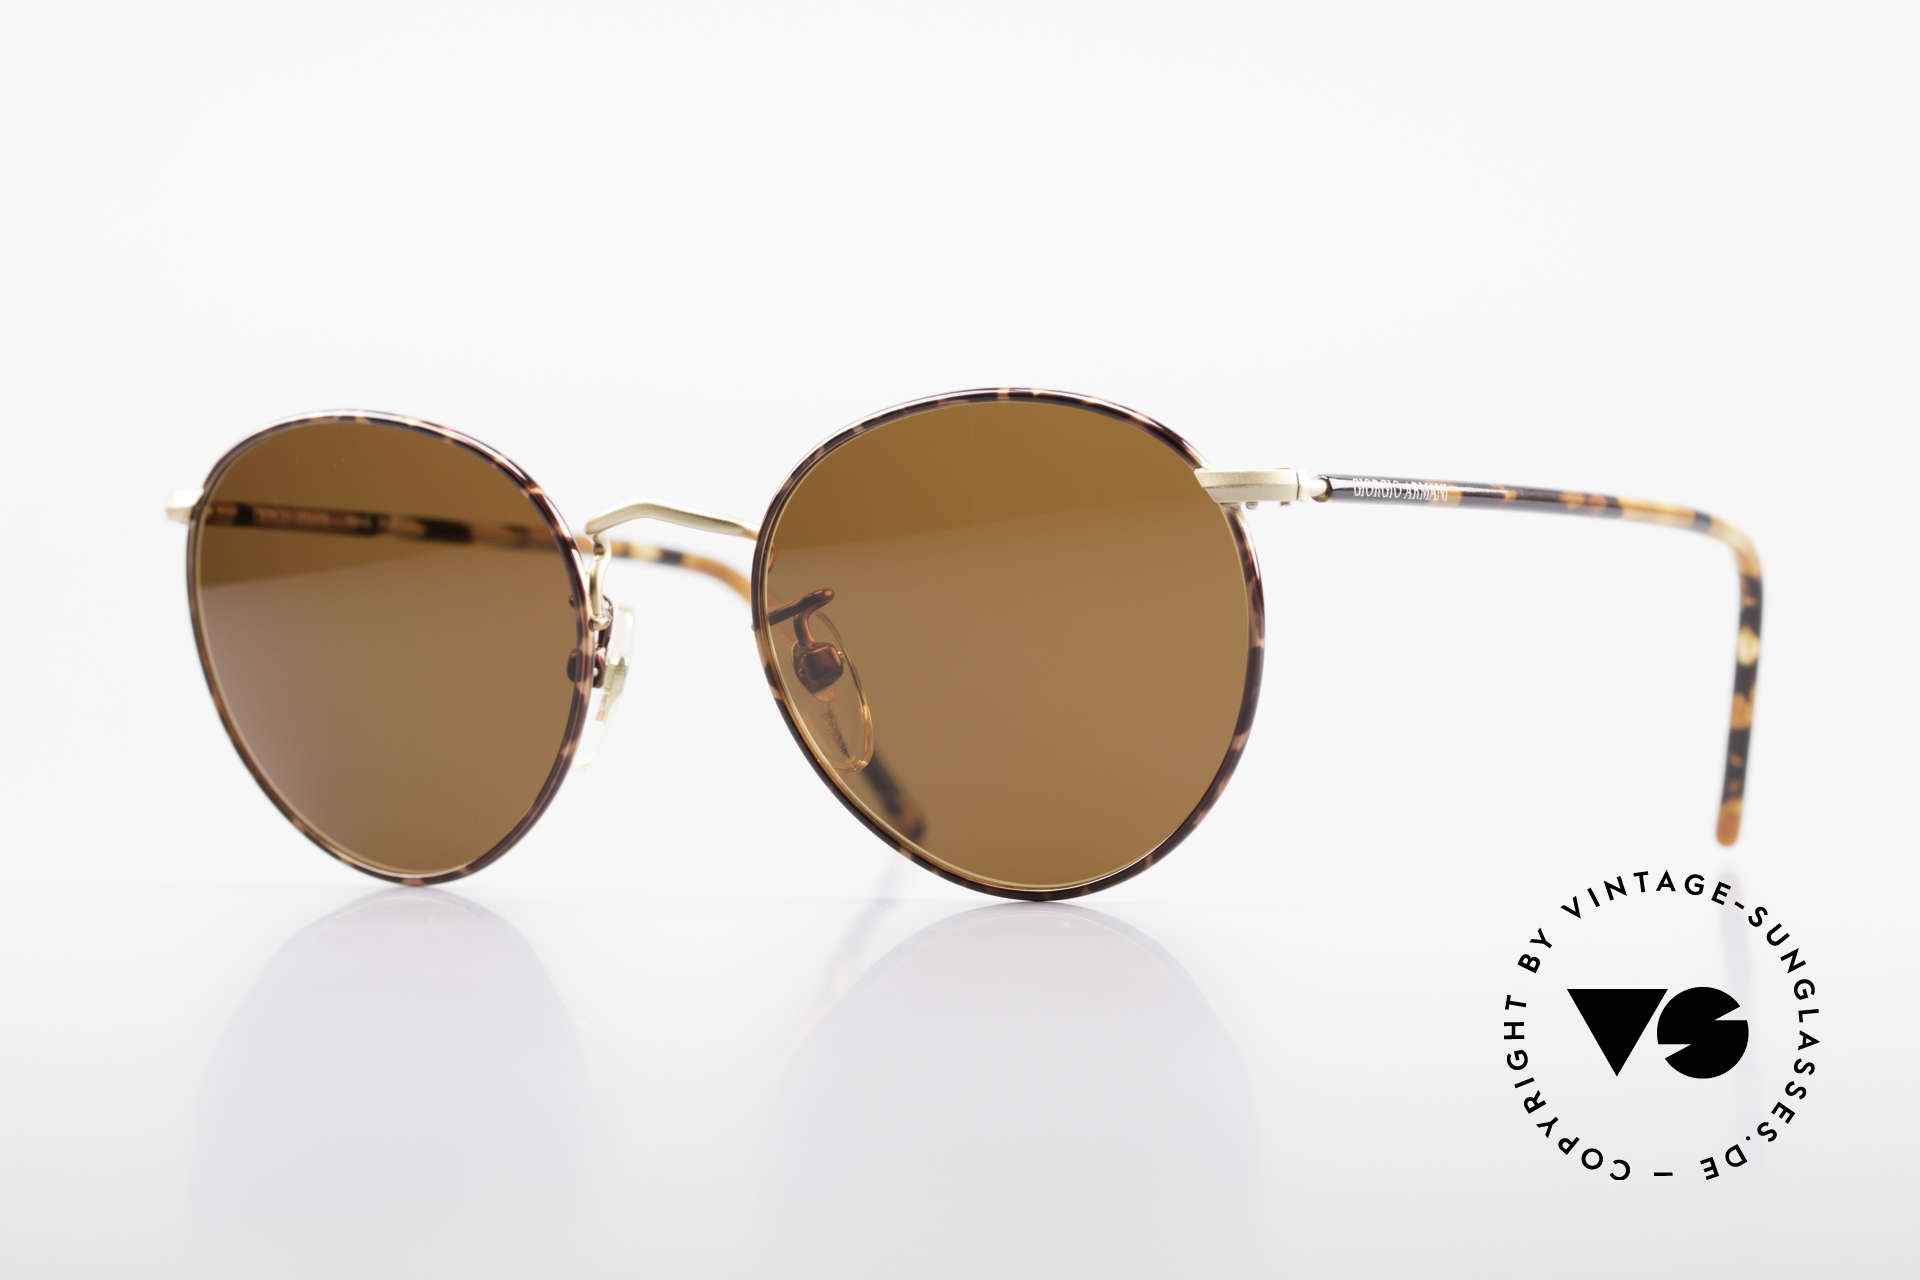 Giorgio Armani 138 Panto Vintage Sunglasses, timeless vintage Giorgio Armani designer sunglasses, Made for Men